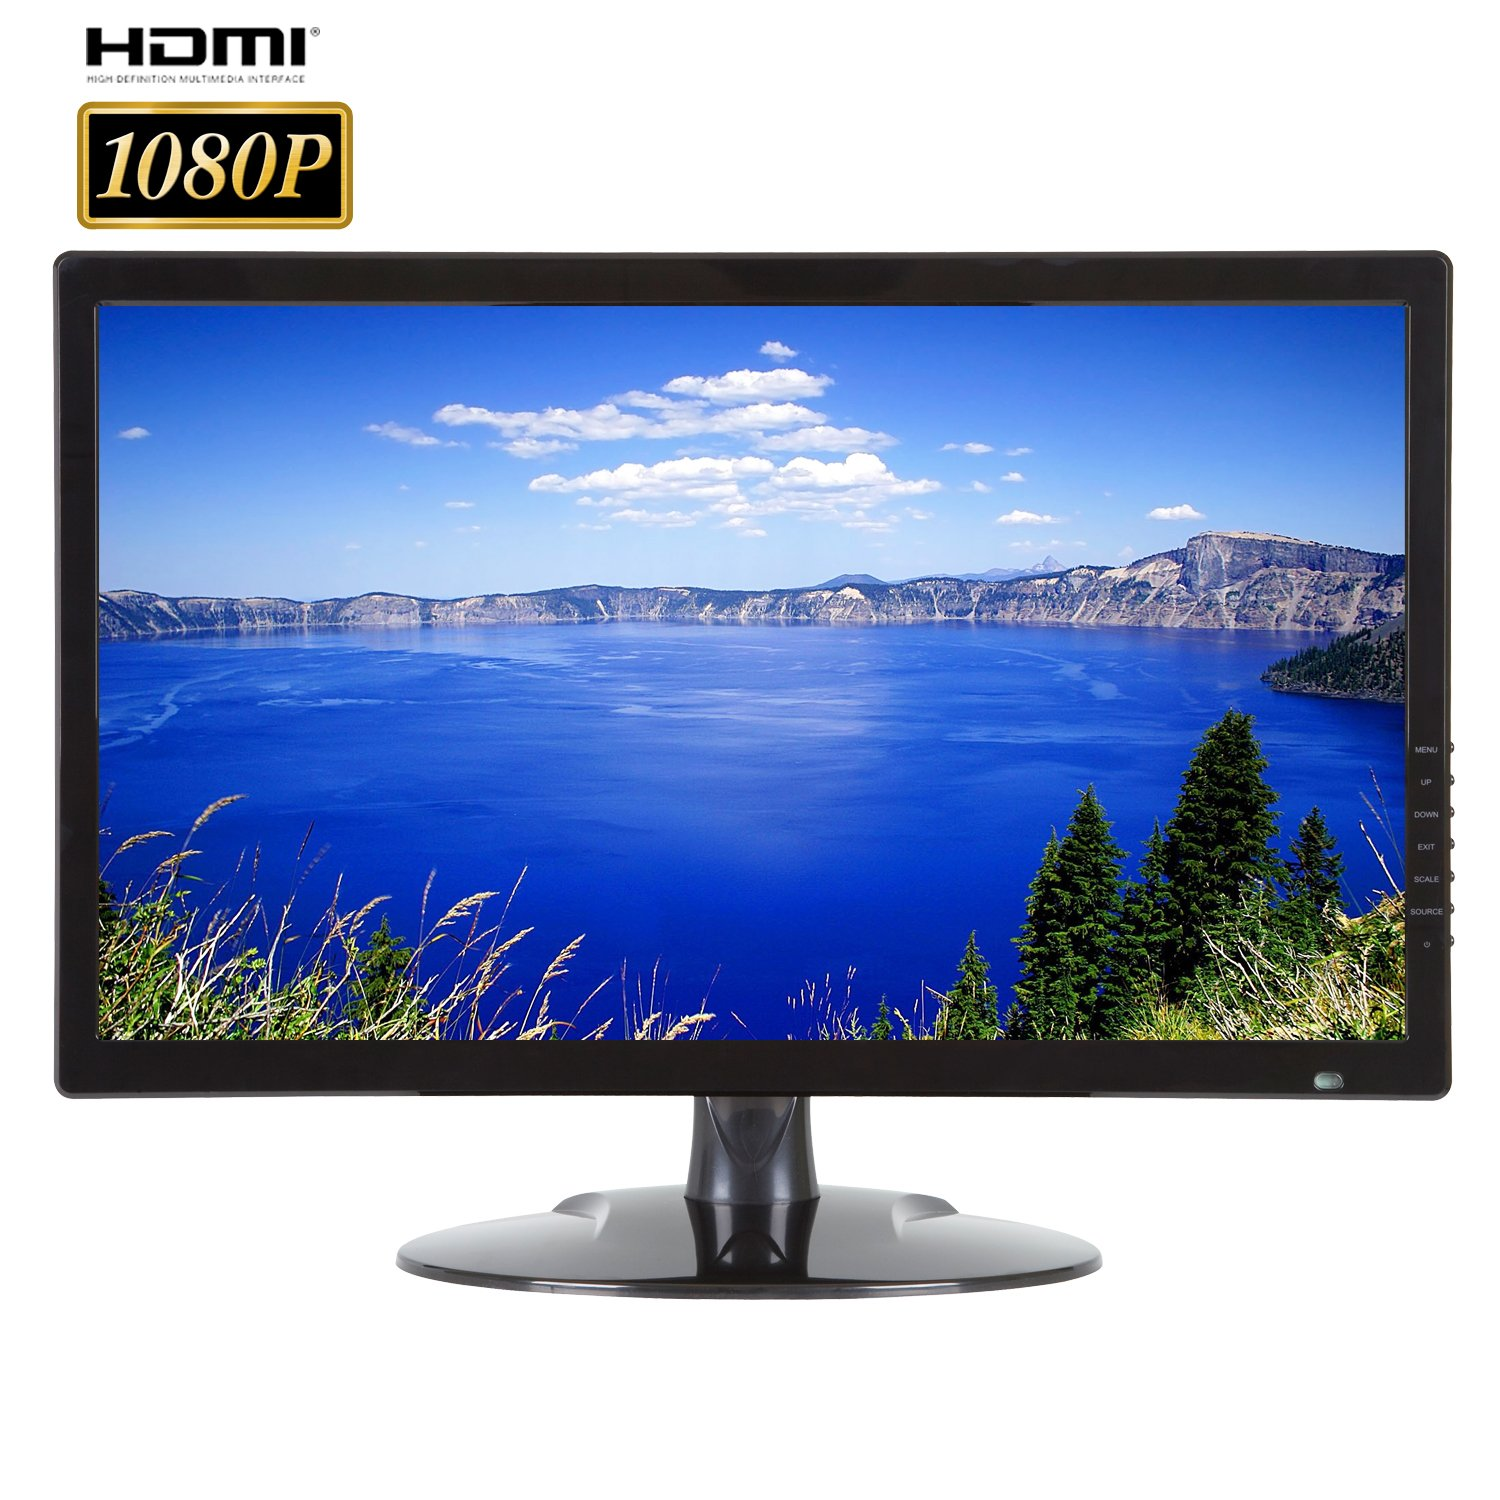 101AV Security Monitor 21.5-Inch True Full HD 1080P 3D Comb Filter 1920x 1080 HDMI VGA and Looping BNC Input Wide Screen Audio Video Display Computer PC monitor for CCTV DVR Home Office Surveillance Optional mount by 101 Audio Video Inc. (Image #1)